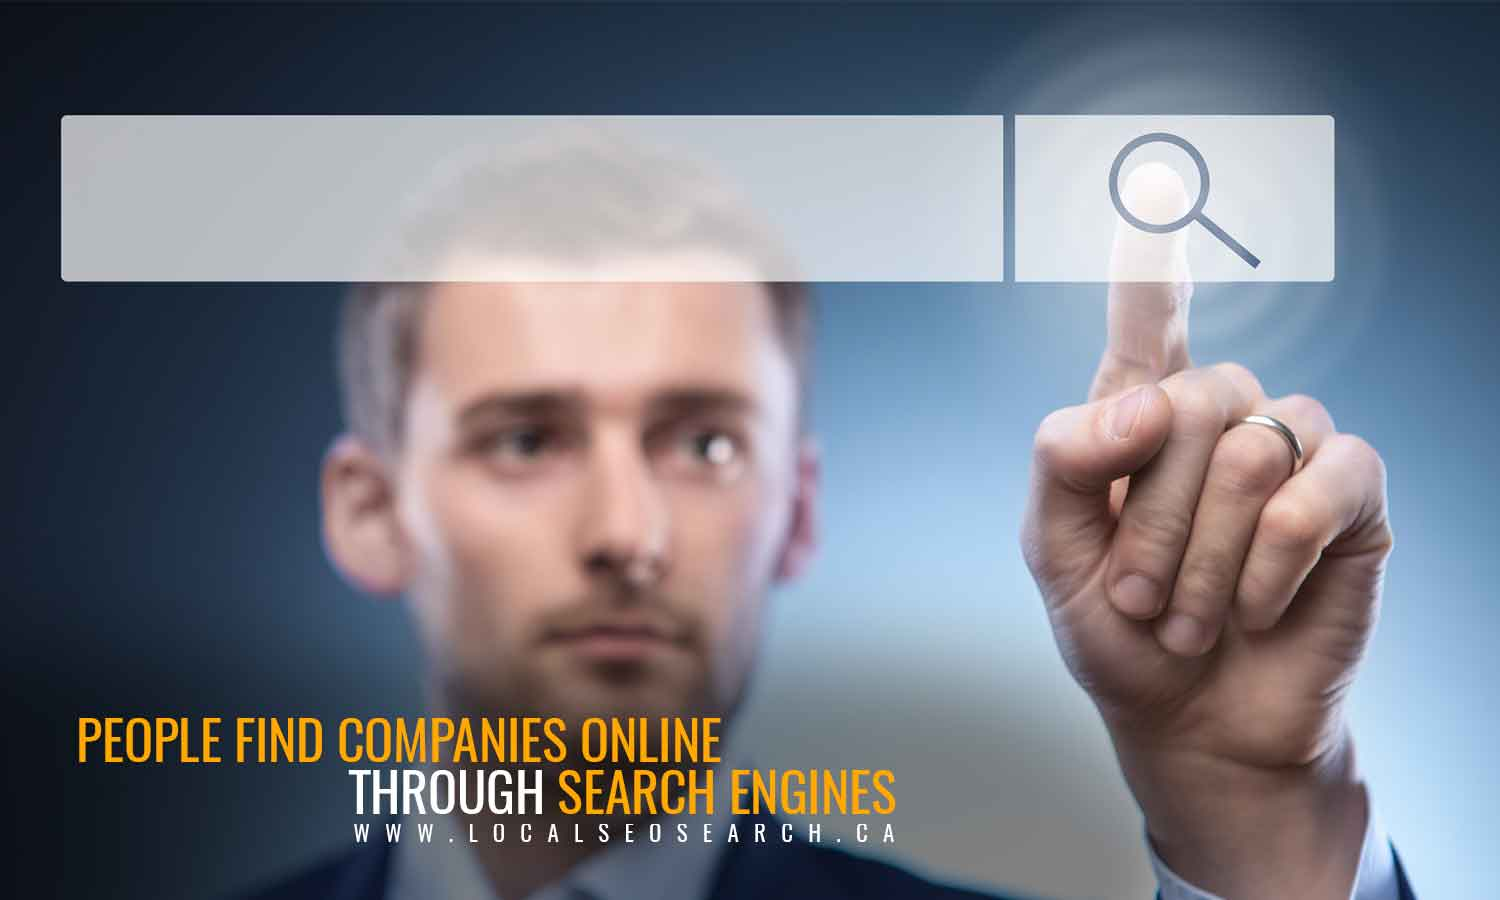 People find companies online through search engines